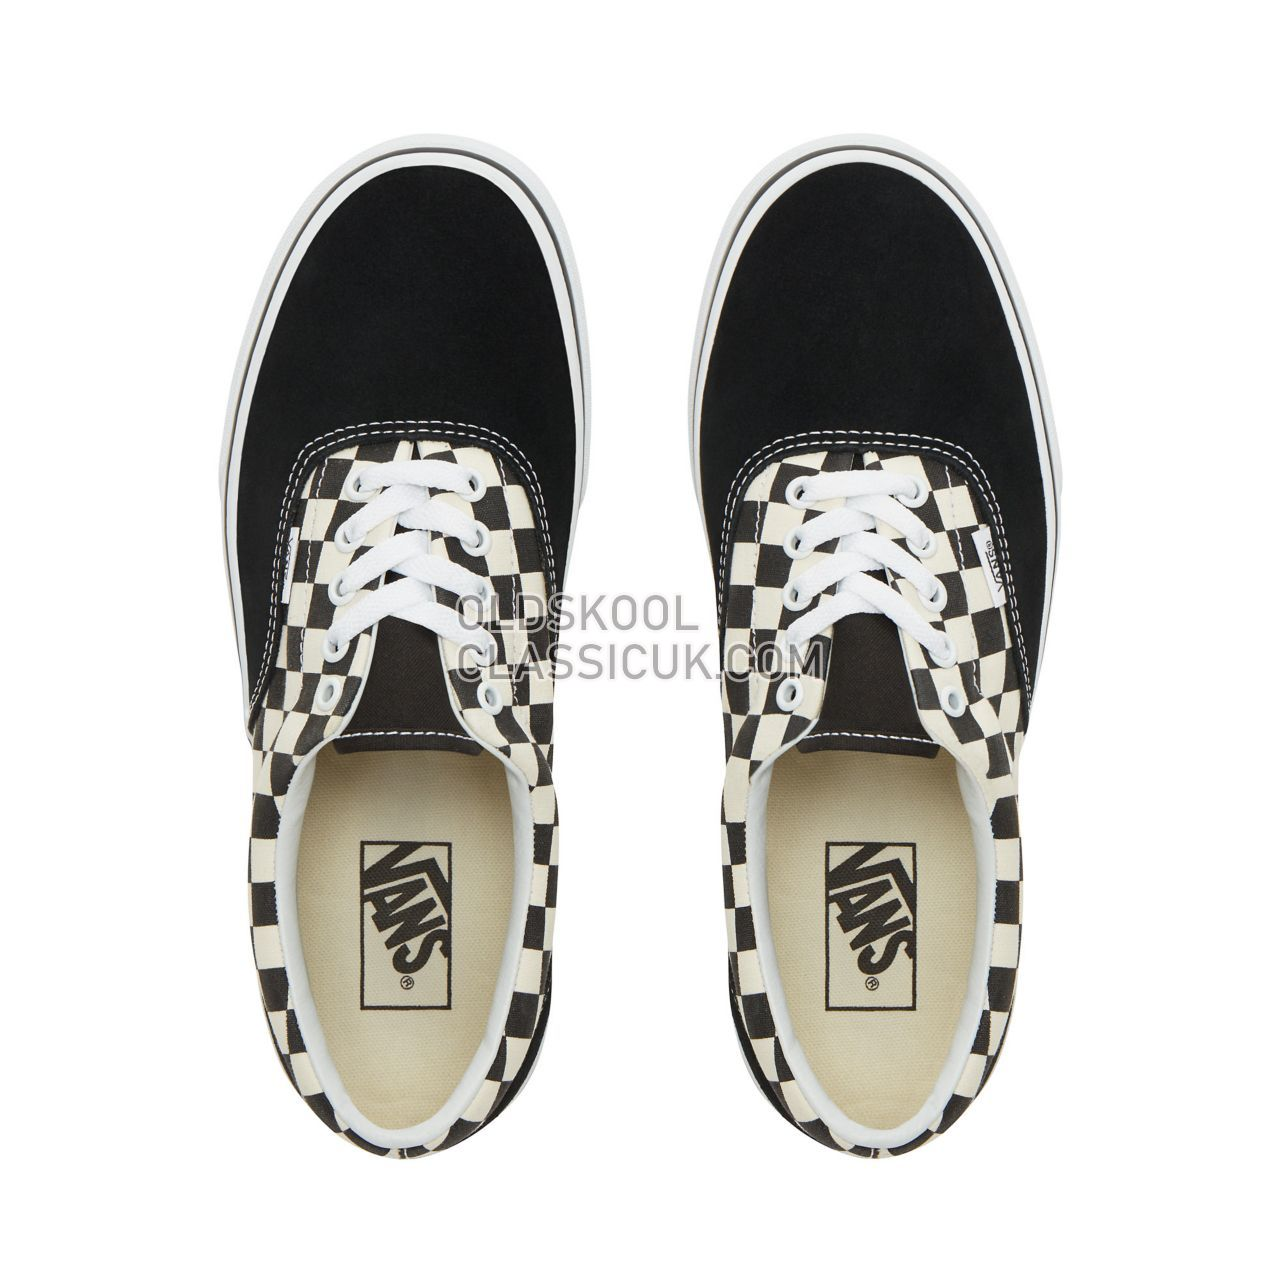 Vans Primary Check Era Sneakers Mens (Primary Check) black/white VN0A38FRP0S Shoes